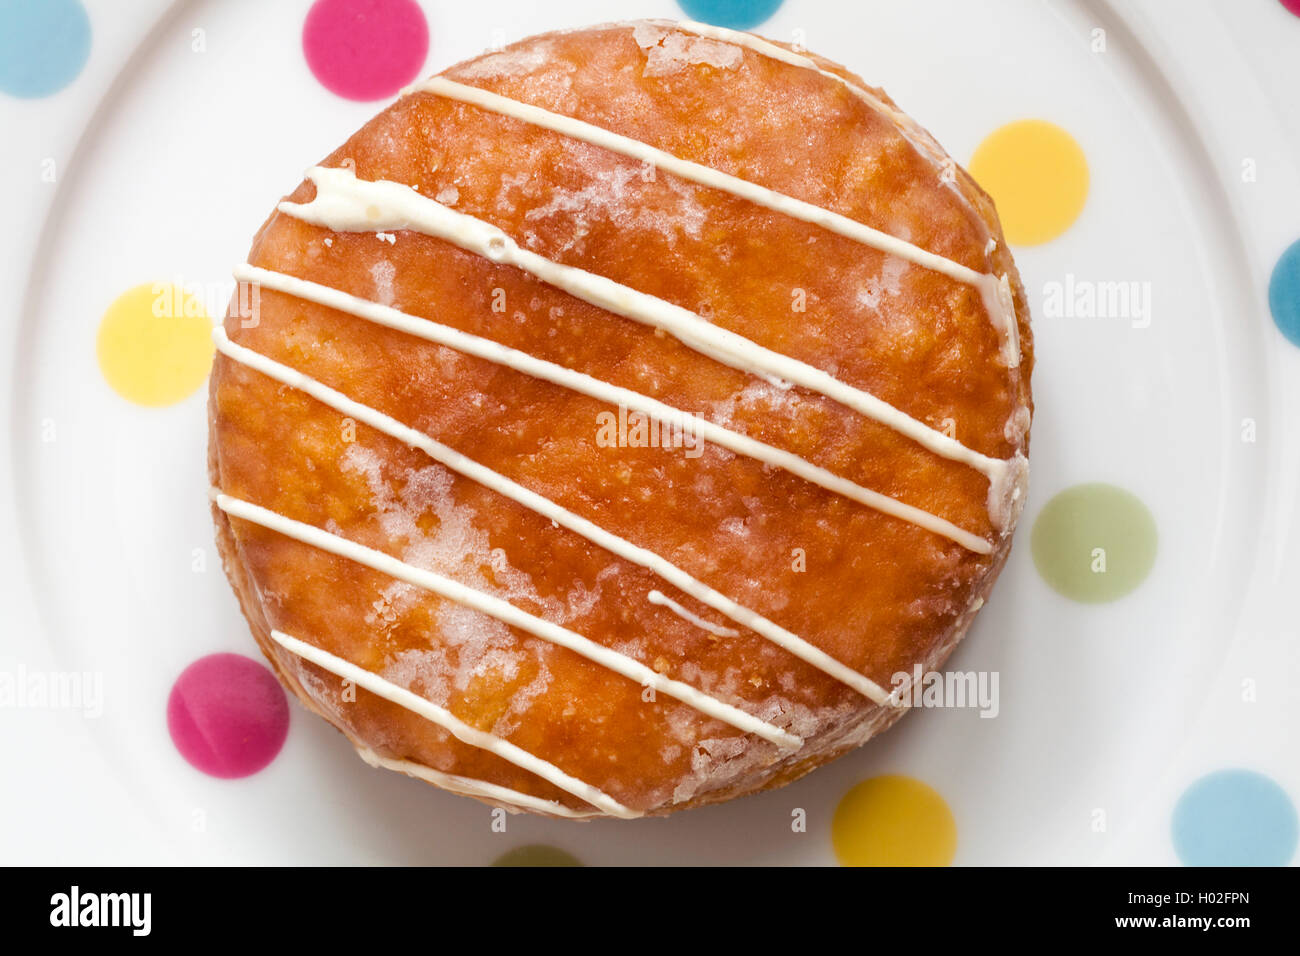 M&S Passion Fruit Yum Yums iced doughnut on spotty plate - Stock Image